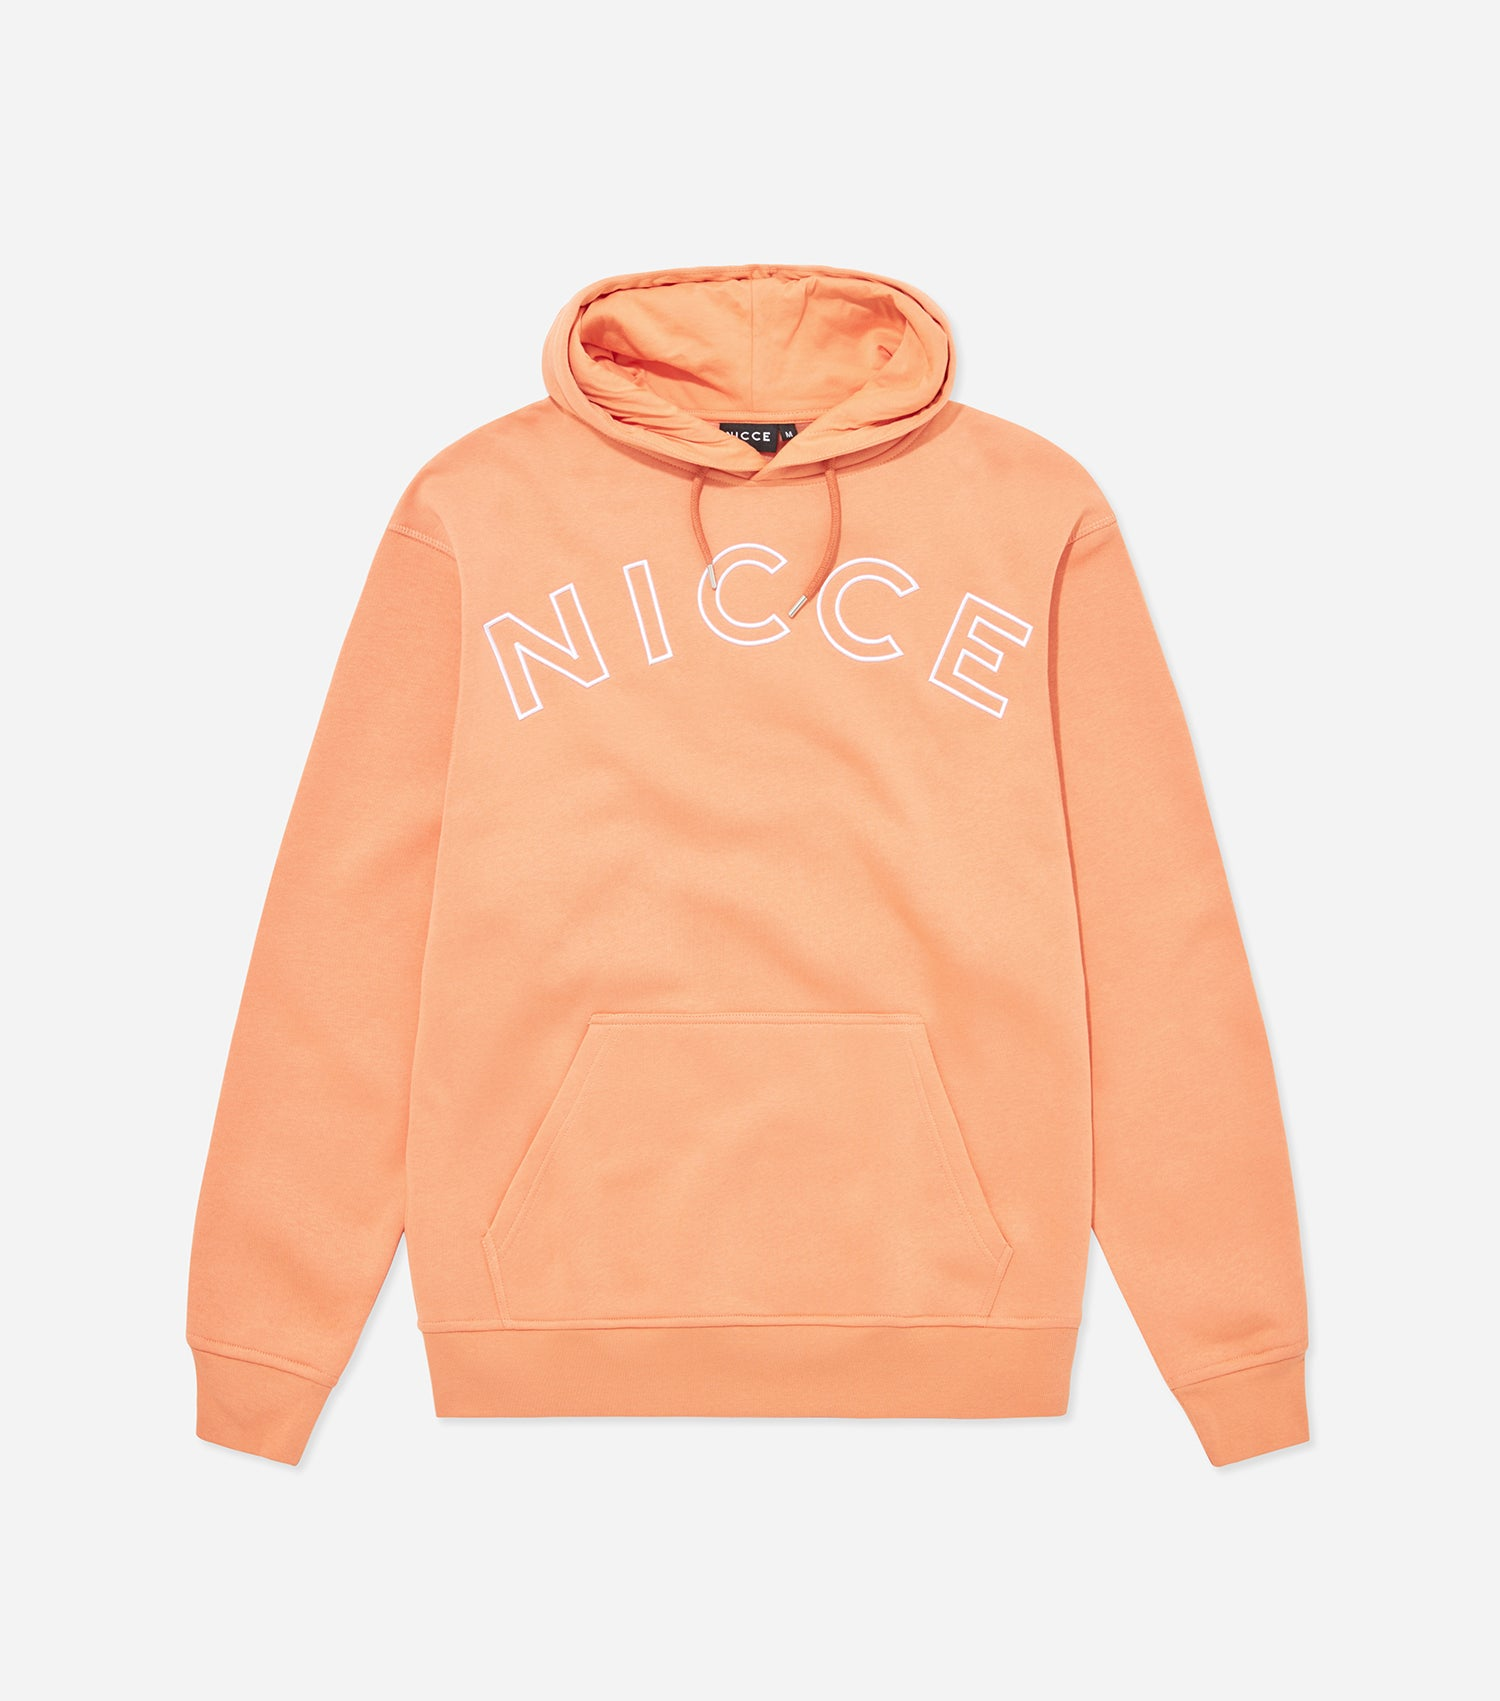 63879709971b Bower hood in coral. Featuring relaxed fit, overhead hood and large front  embroidery logo